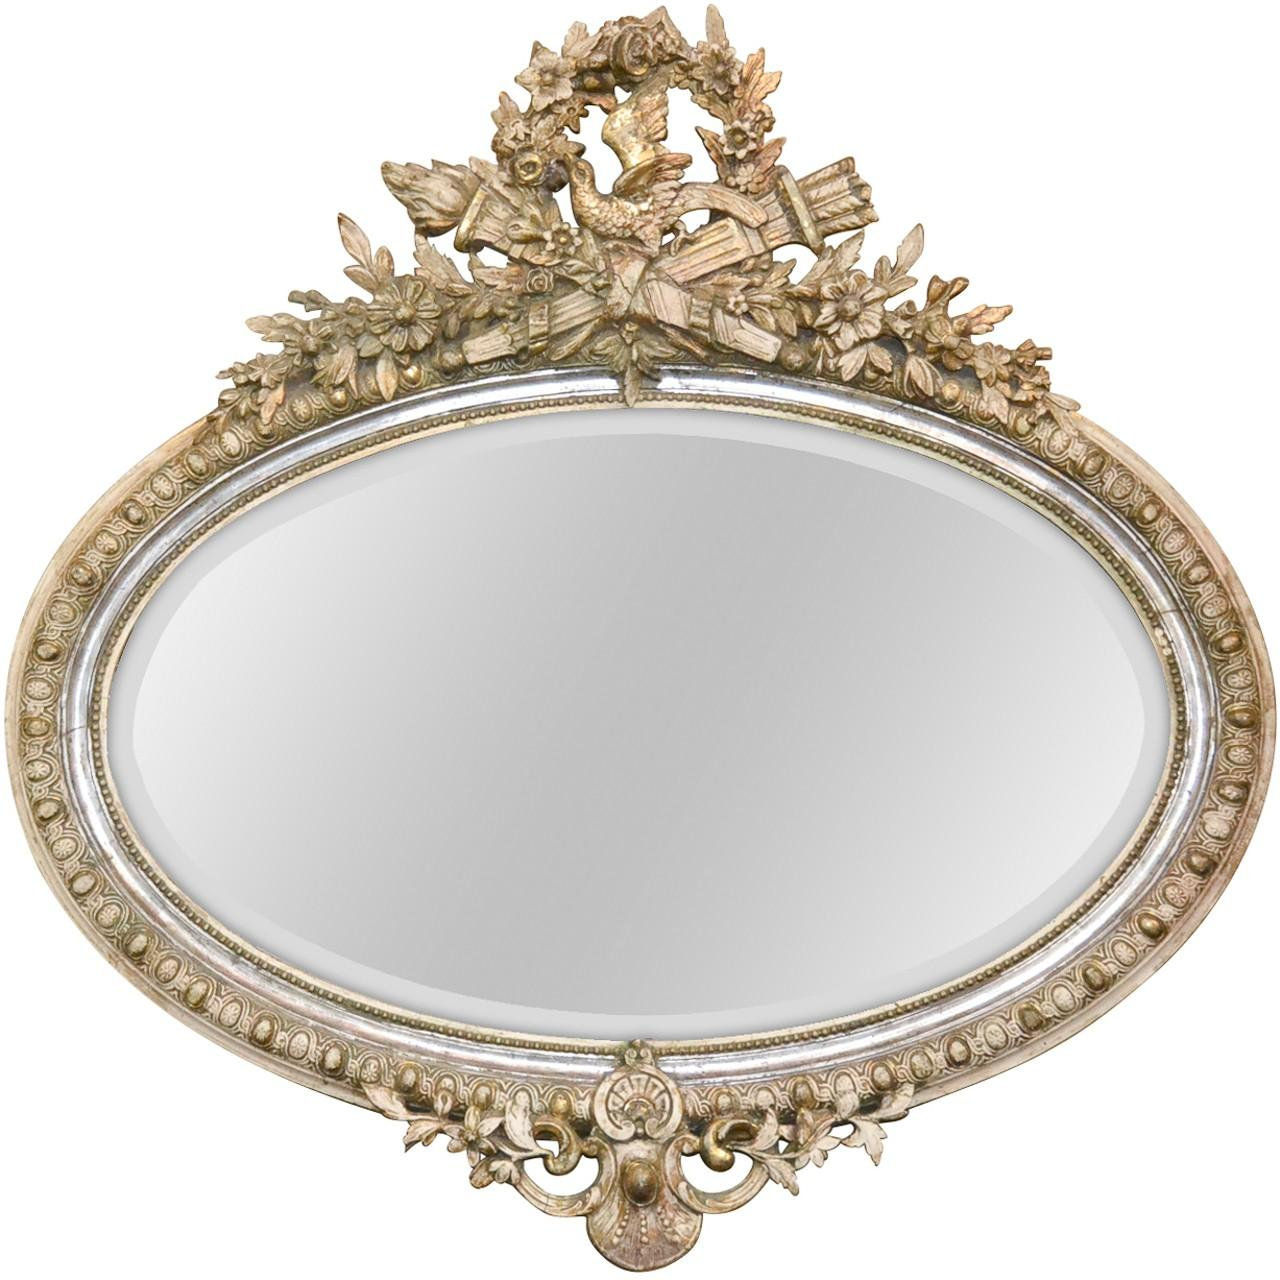 19th Century French Louis XVI Carved Oval Mirror